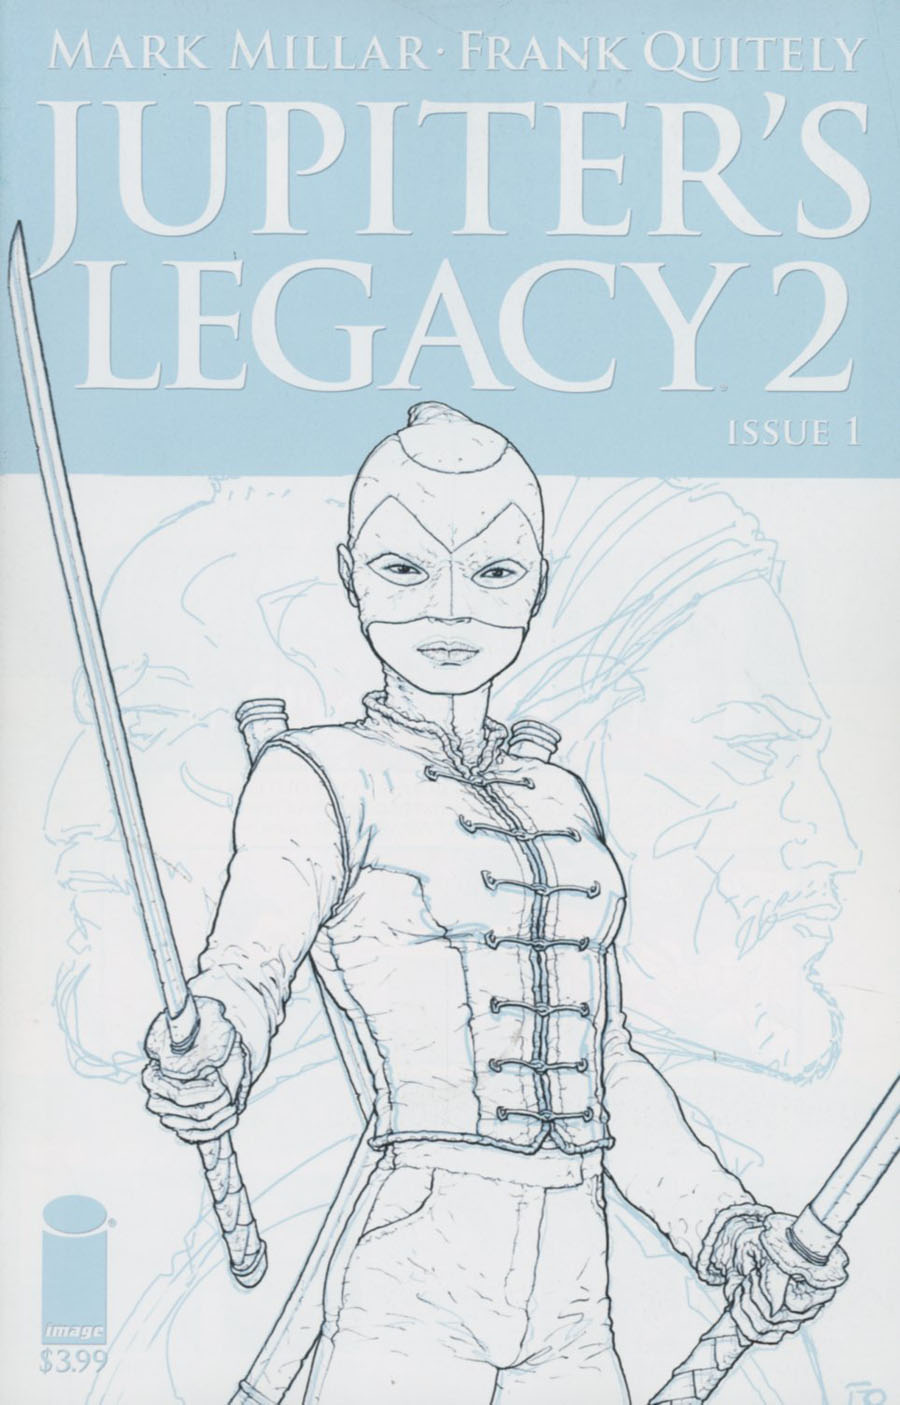 Jupiters Legacy Vol 2 #1 Cover E Incentive Frank Quitely Sketch Cover